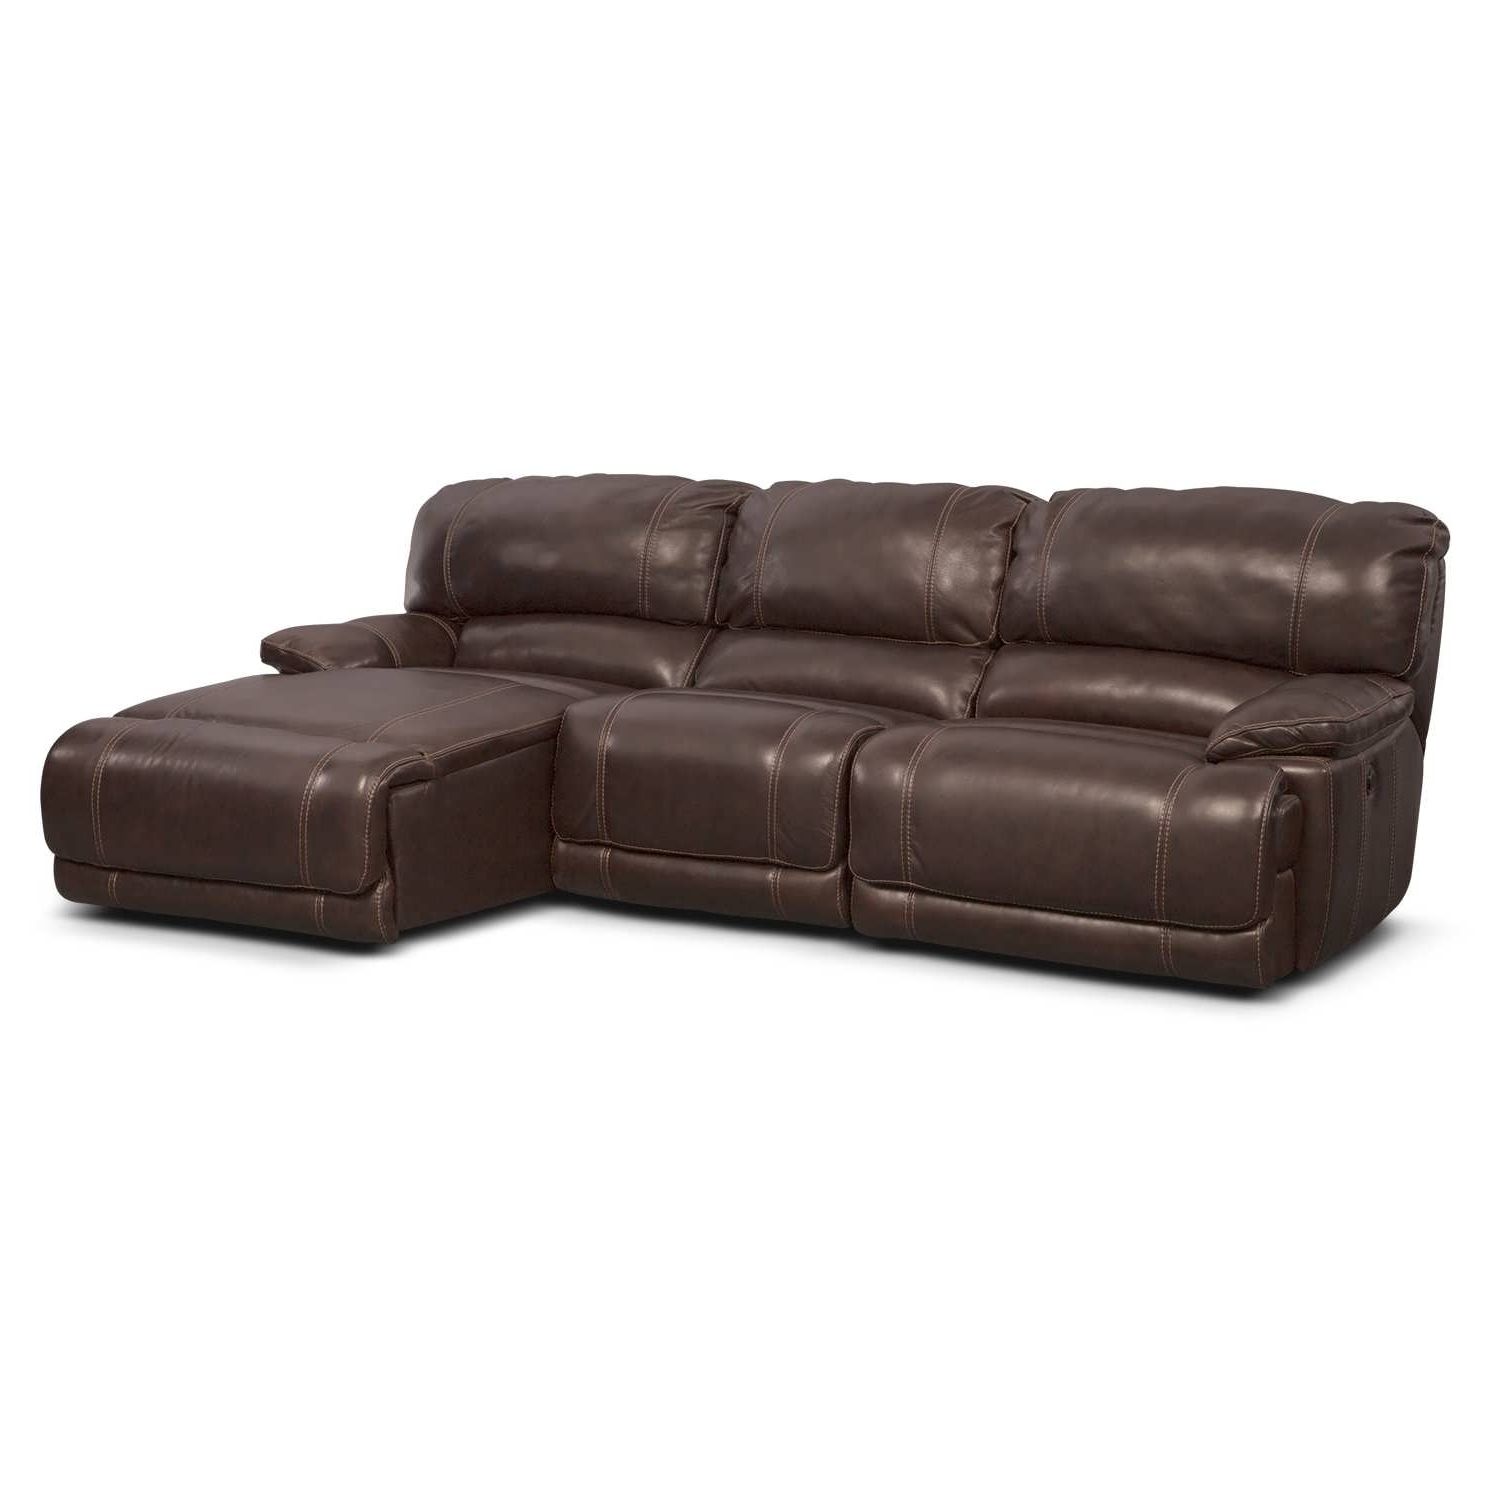 Preferred Large Chaises Throughout Sofa : Leather Sectional Couch Gray Sectional Large Leather (View 10 of 15)